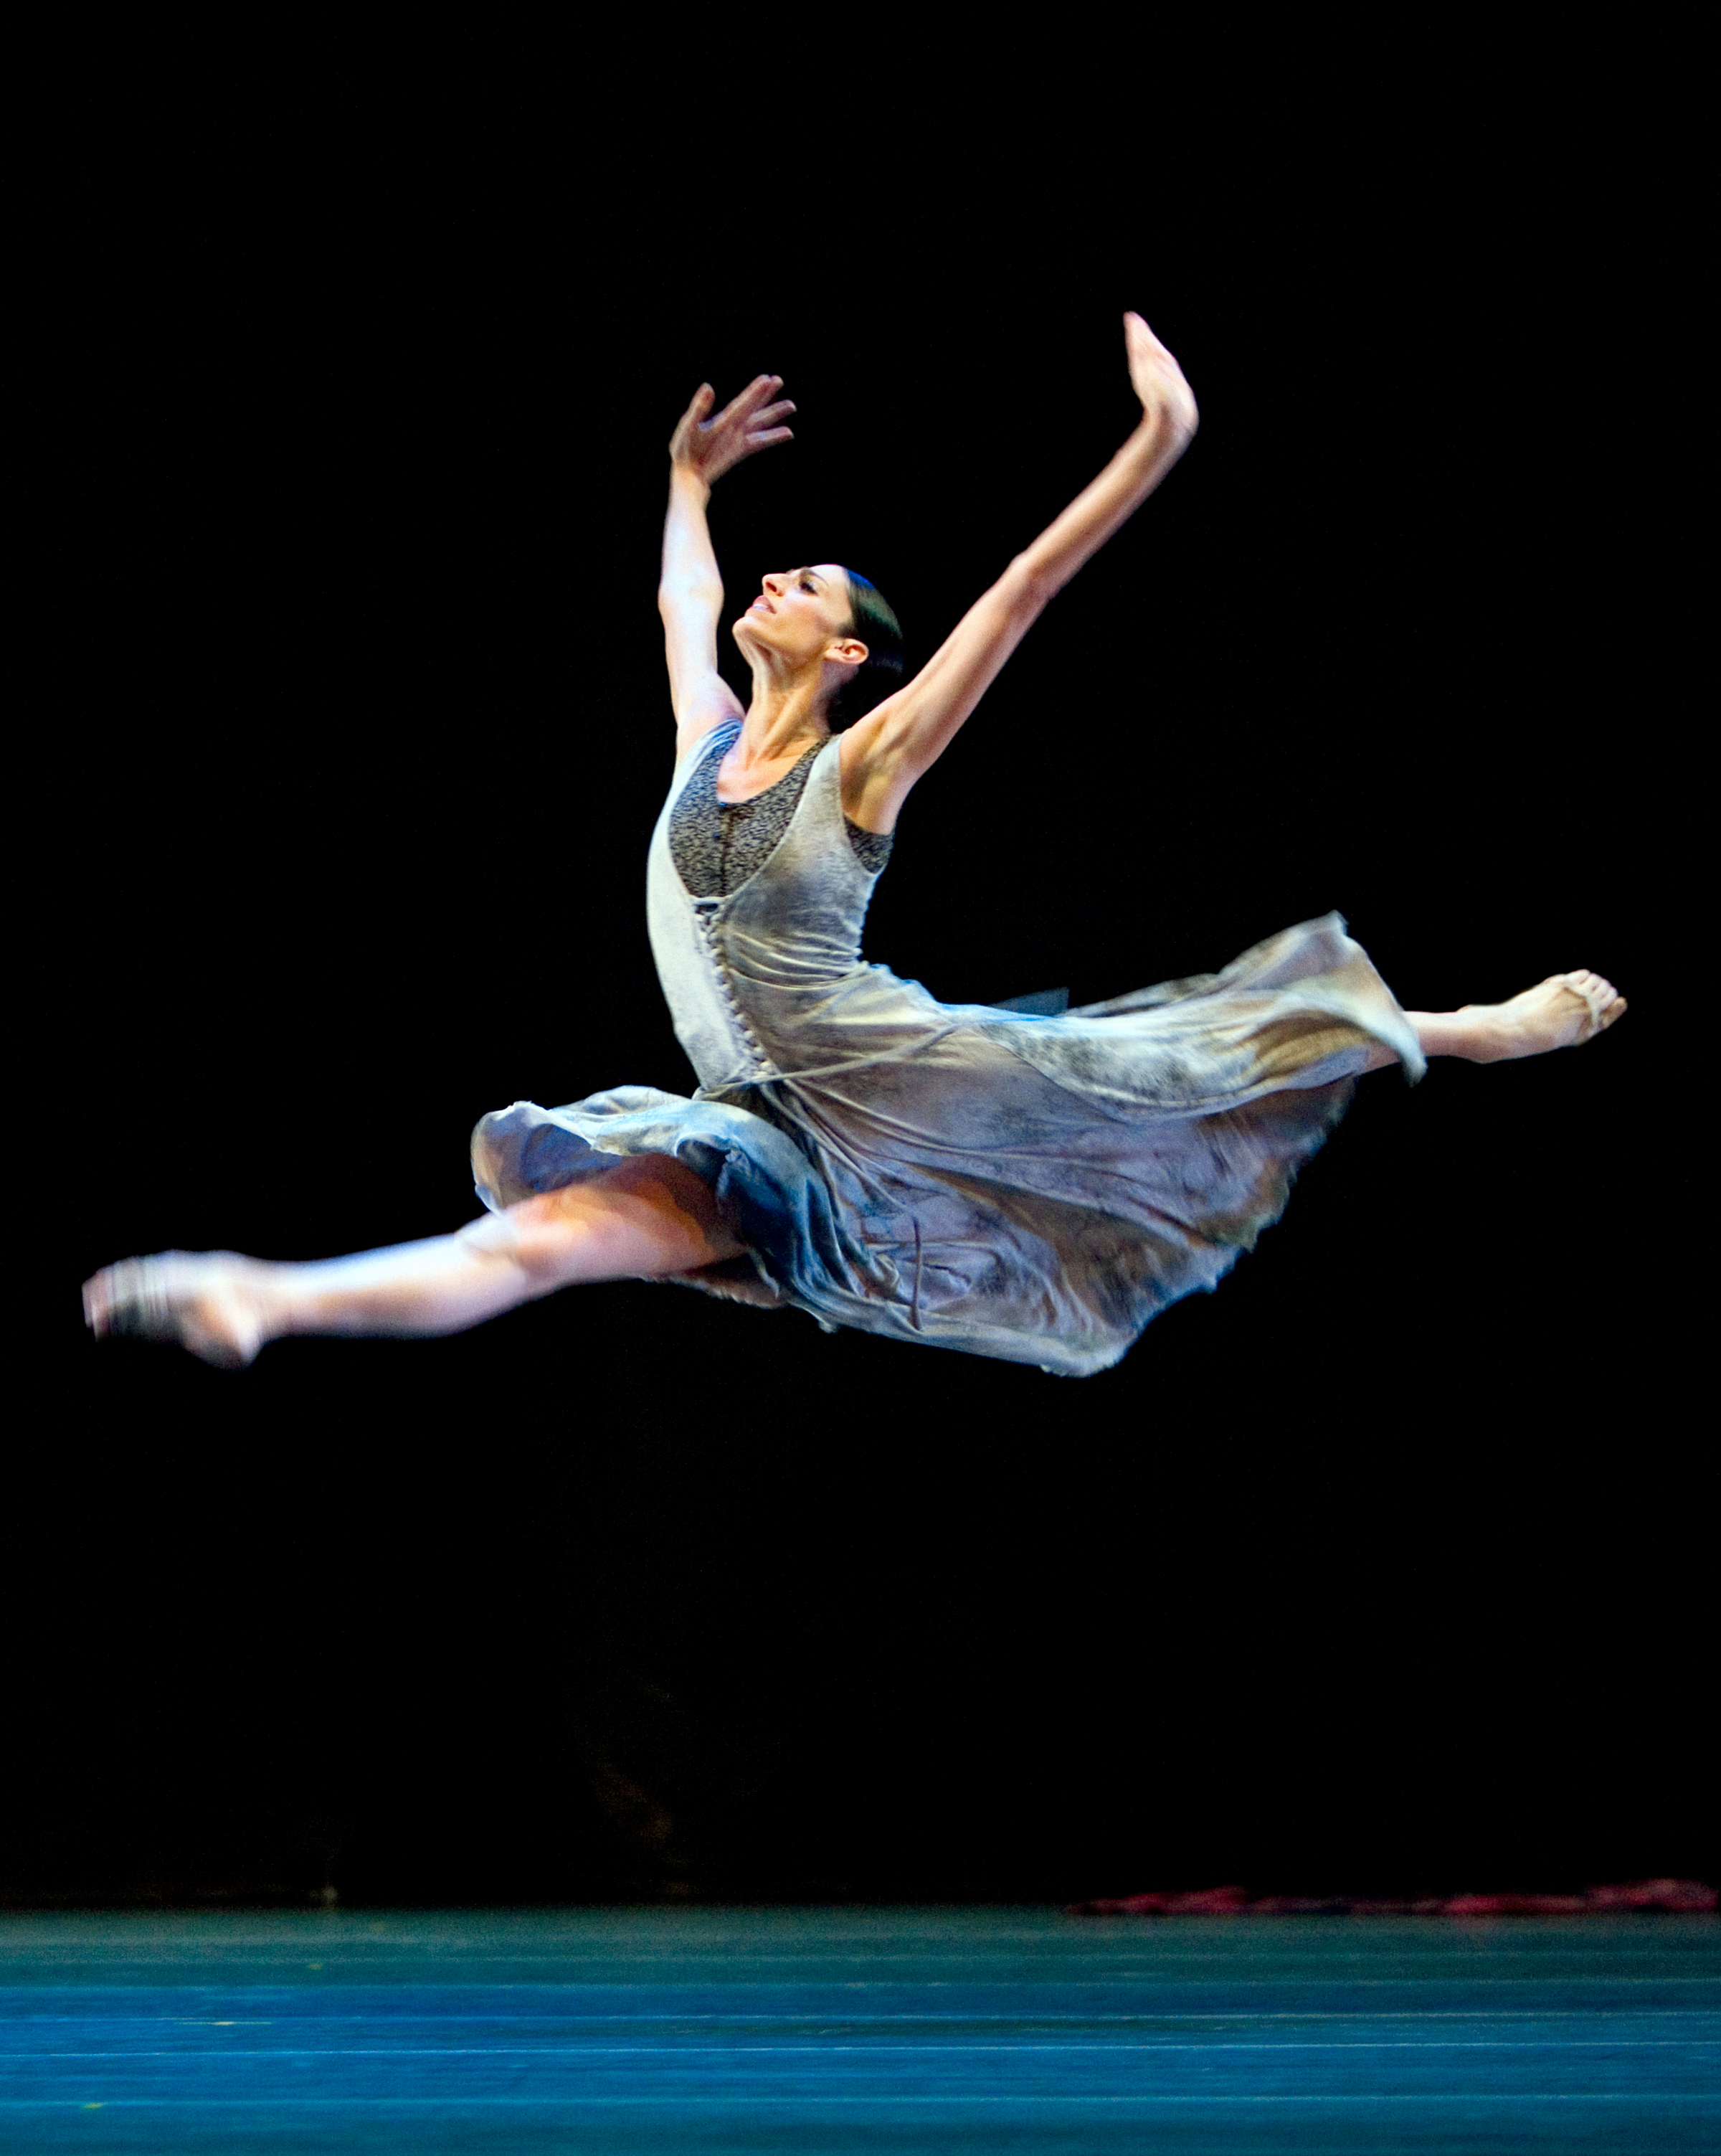 dancer in jete across the stage